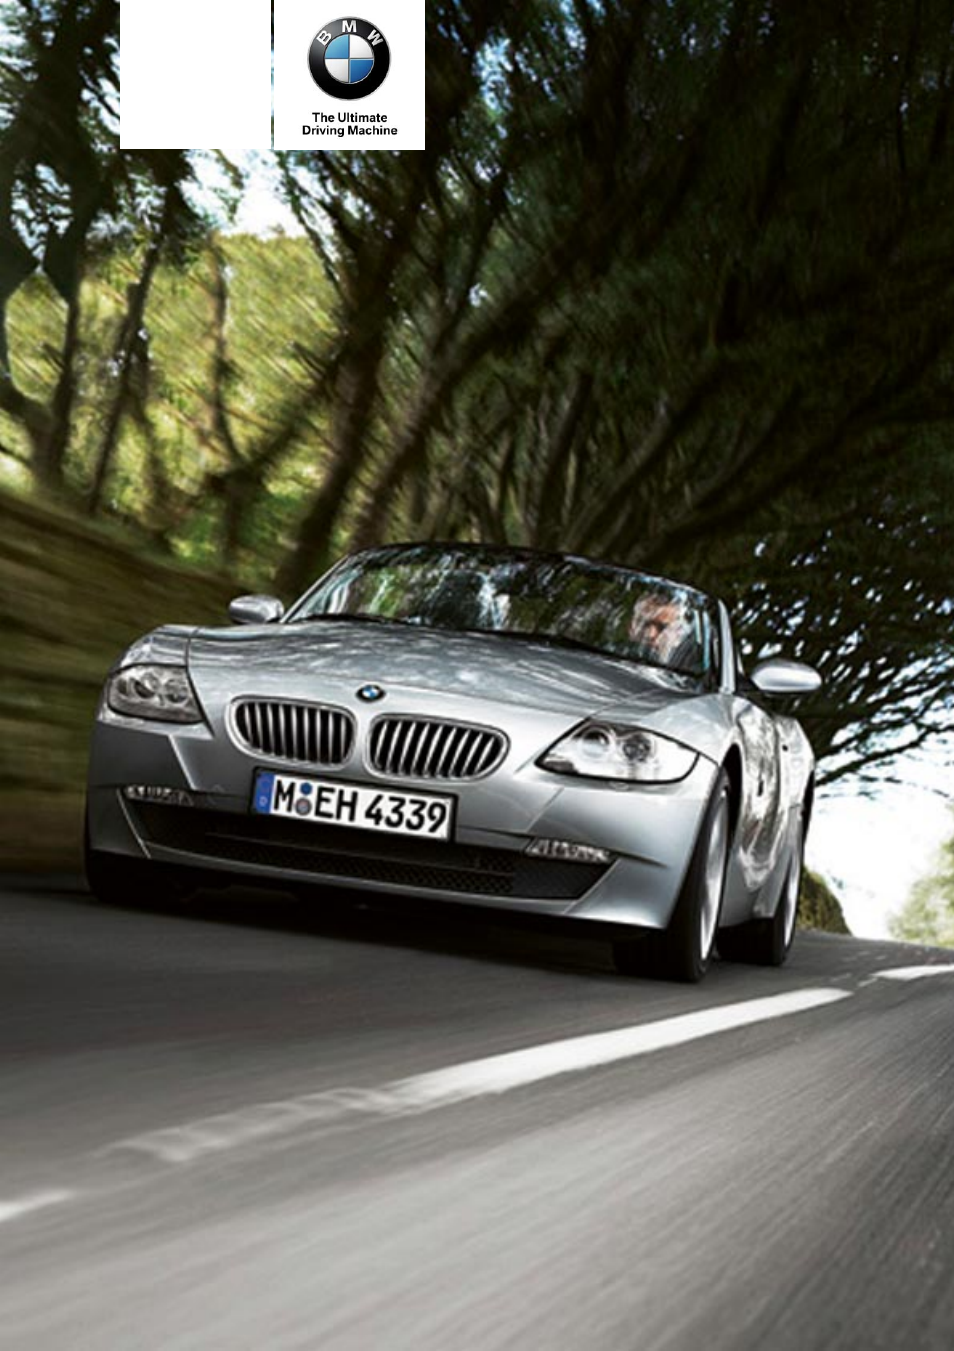 BMW Z4 Roadster 2.0i Sport User Manual | 15 pages | Also for: Z4 Roadster  2.0i, Z4 Roadster 2.0i SE